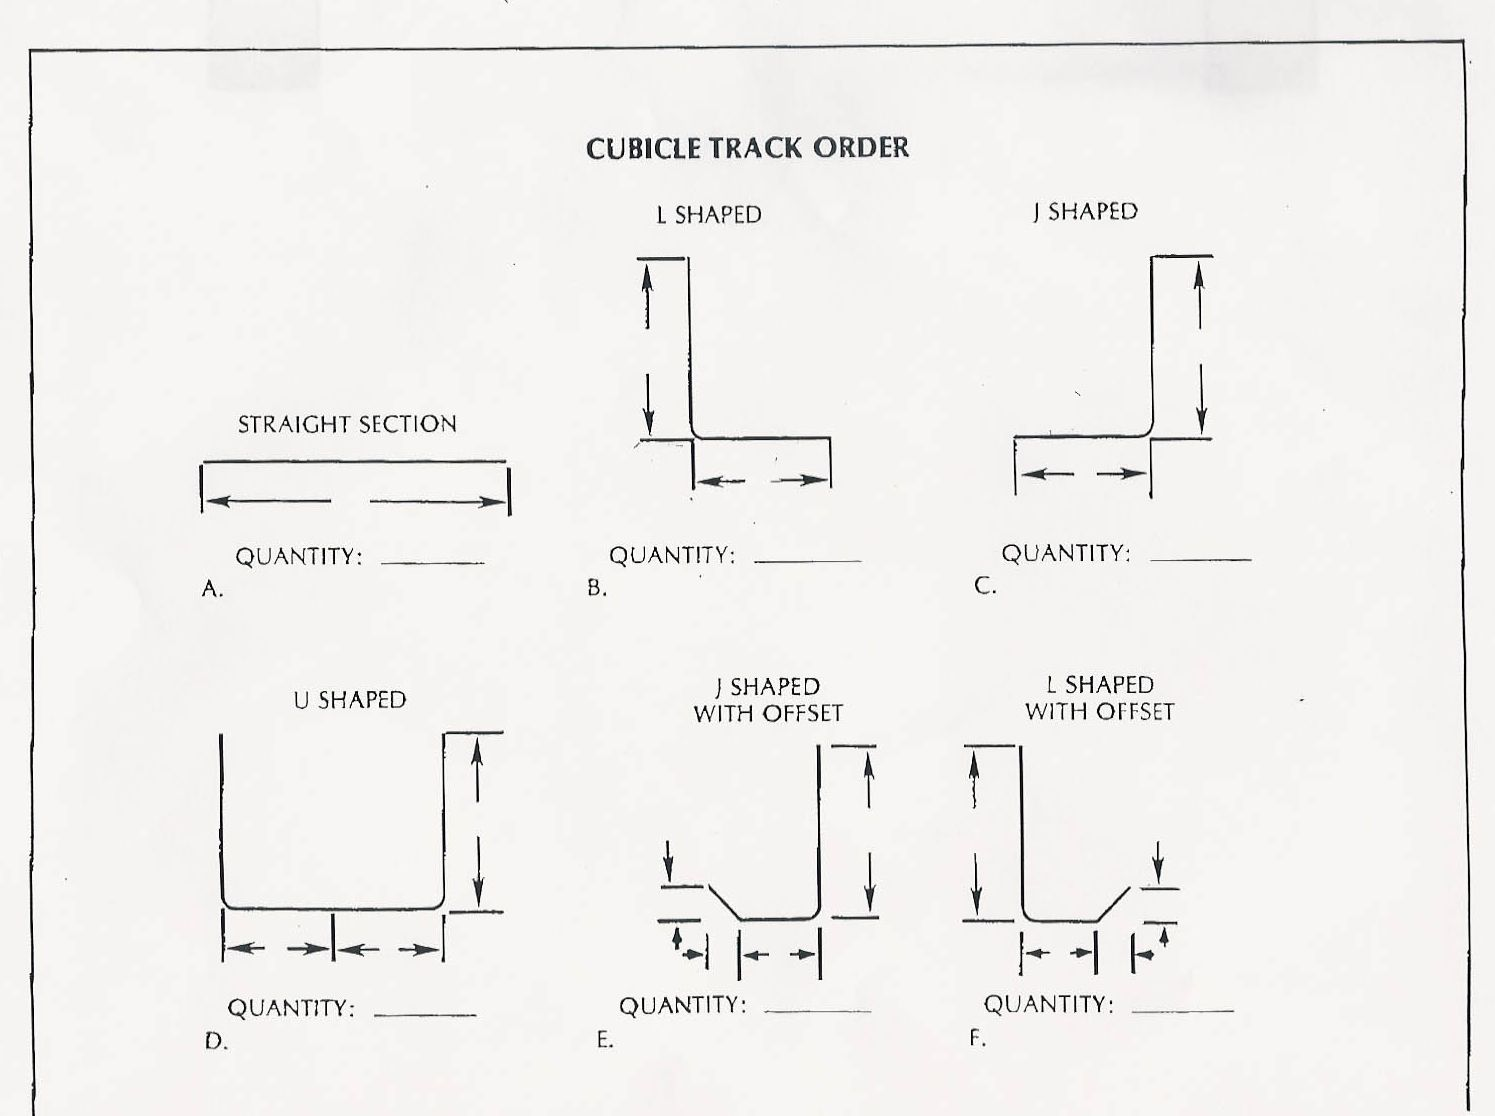 Cubicle Parts Diagram Schematic Diagrams Computer Didac23 Ordering Curtain Tracking Alco Sales Service Co Elevator